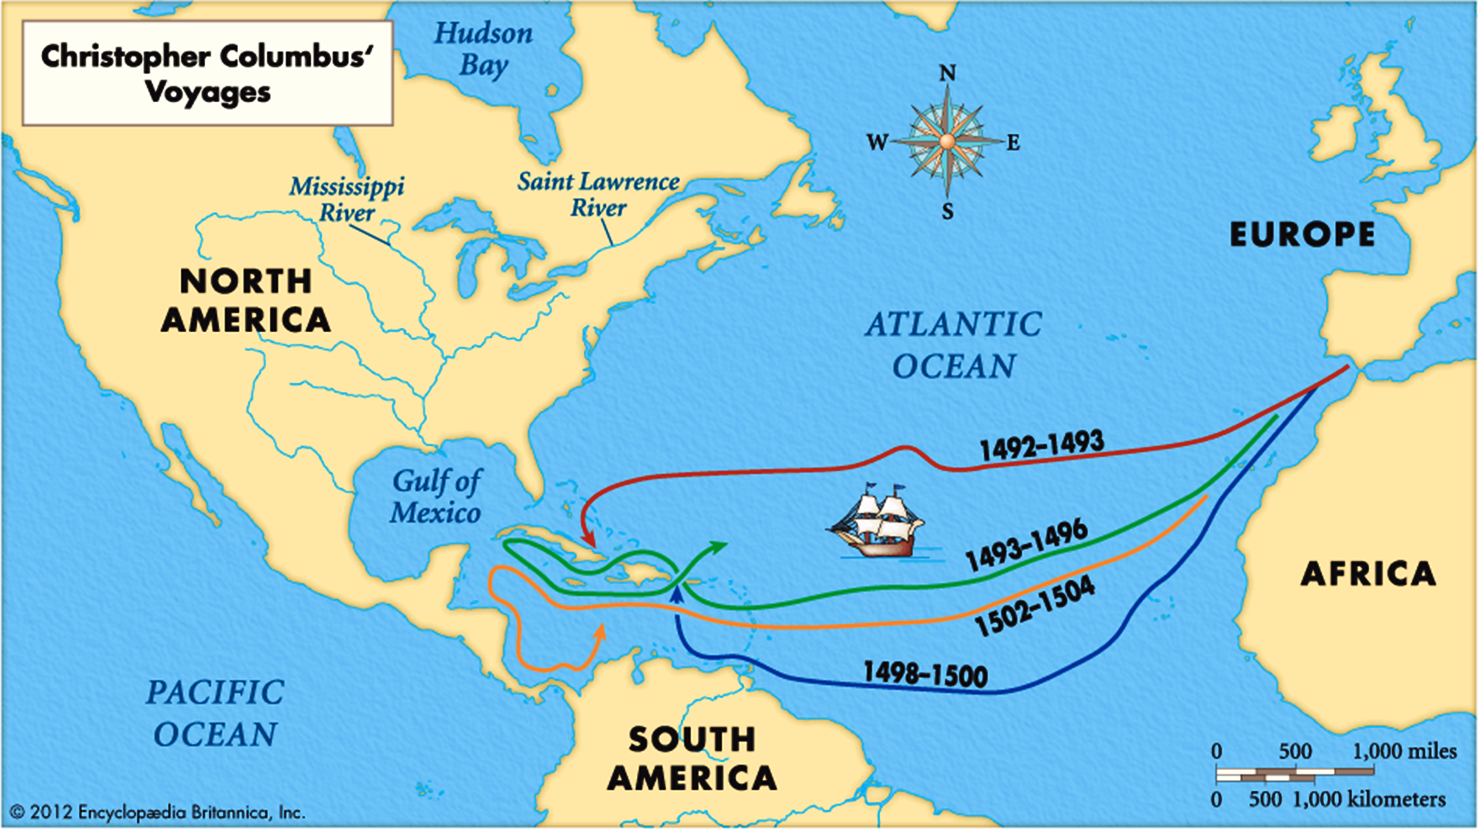 Book Of Mormon Resources Voyages Of Columbus